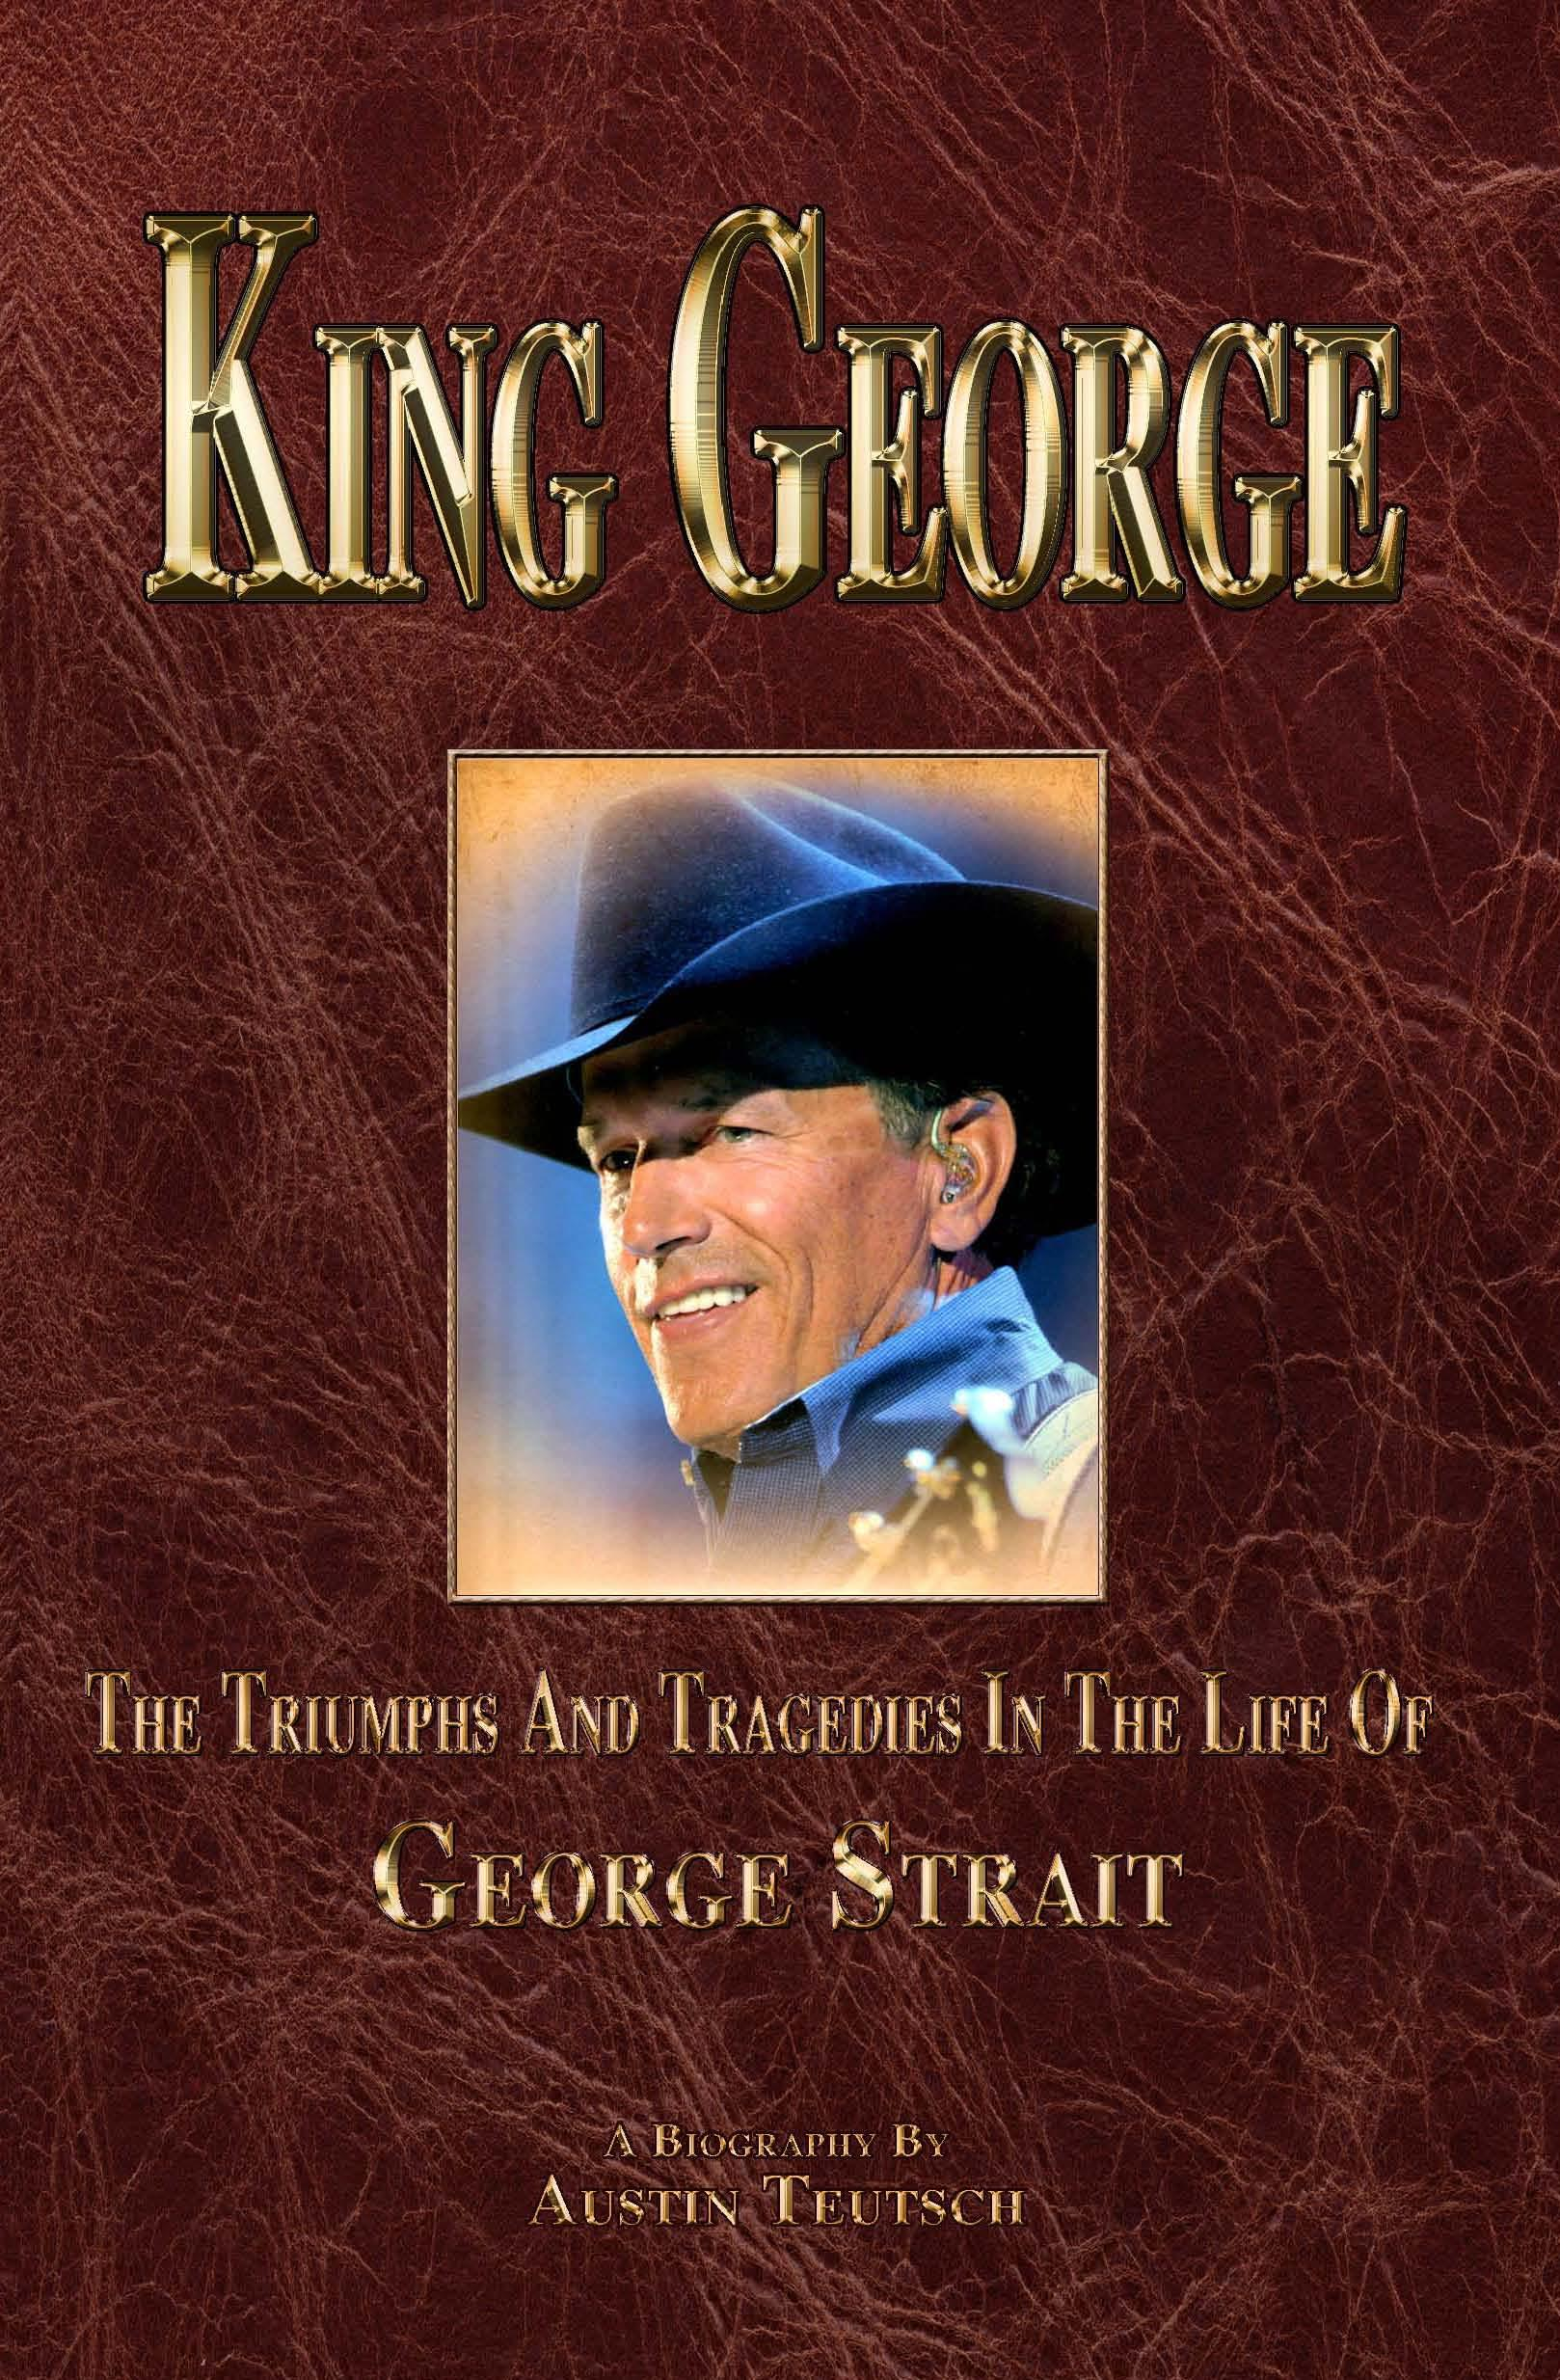 King George The Triumphs and Tragedies in Life of George Strait EB2370003223859